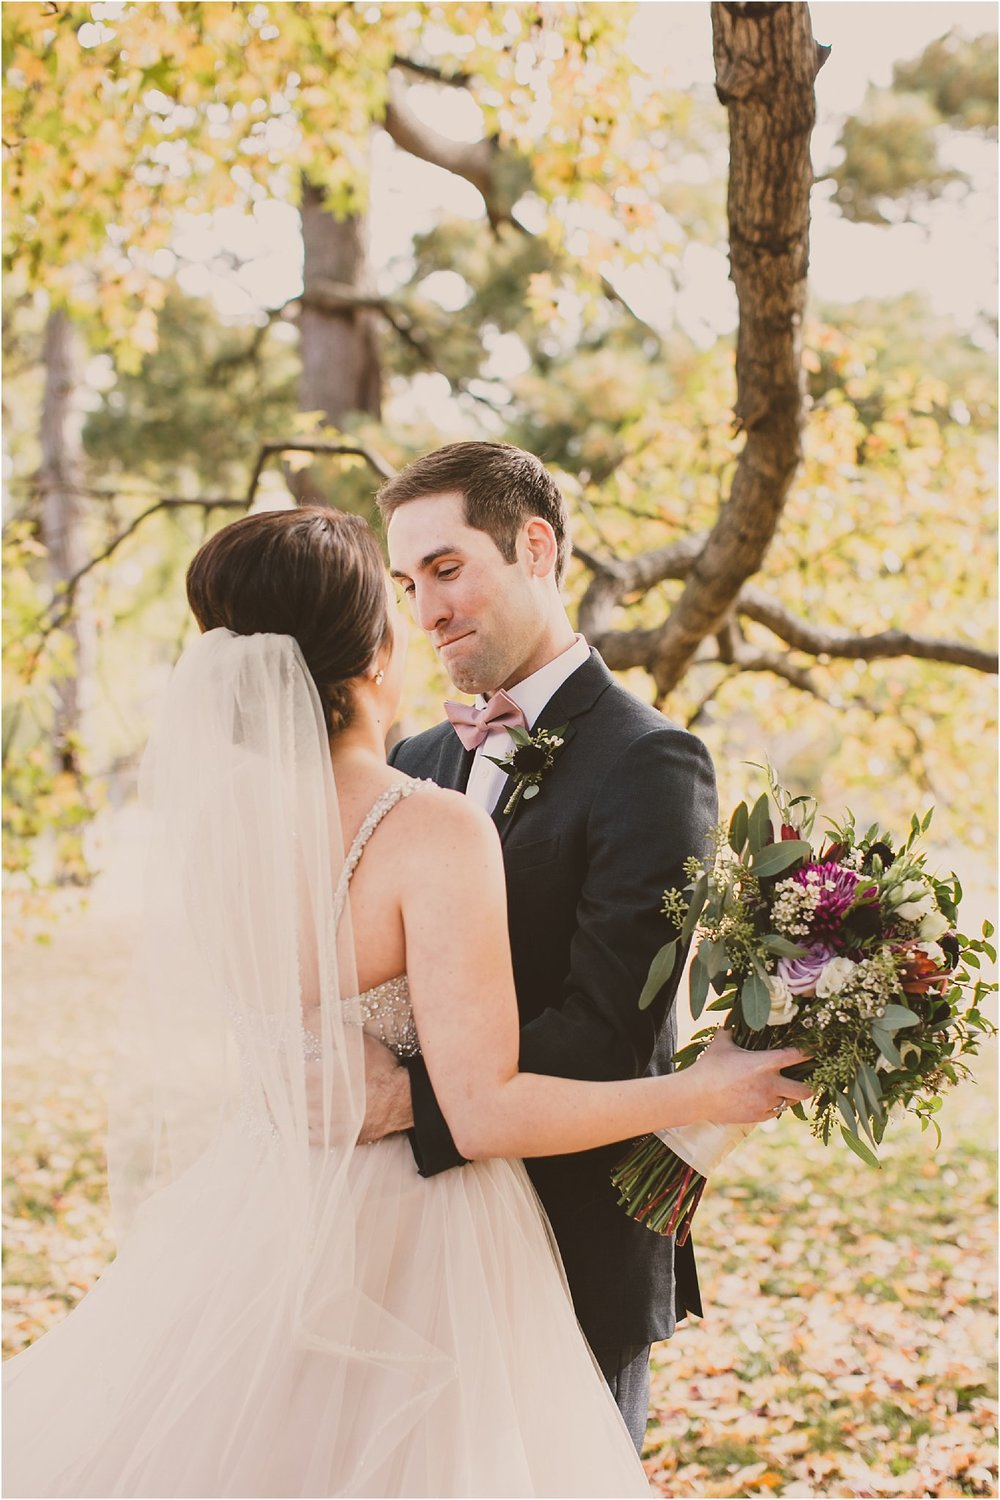 PattengalePhotography_boho_OffBeat_Wedding_StLouis_PiperPalmHouse_Westin_Hipster_Modern_Elegance_November_Fall_Weddings_Husband&Wife_Photographer_Organic_Pink_Greens_Mark&Julia__0039.jpg